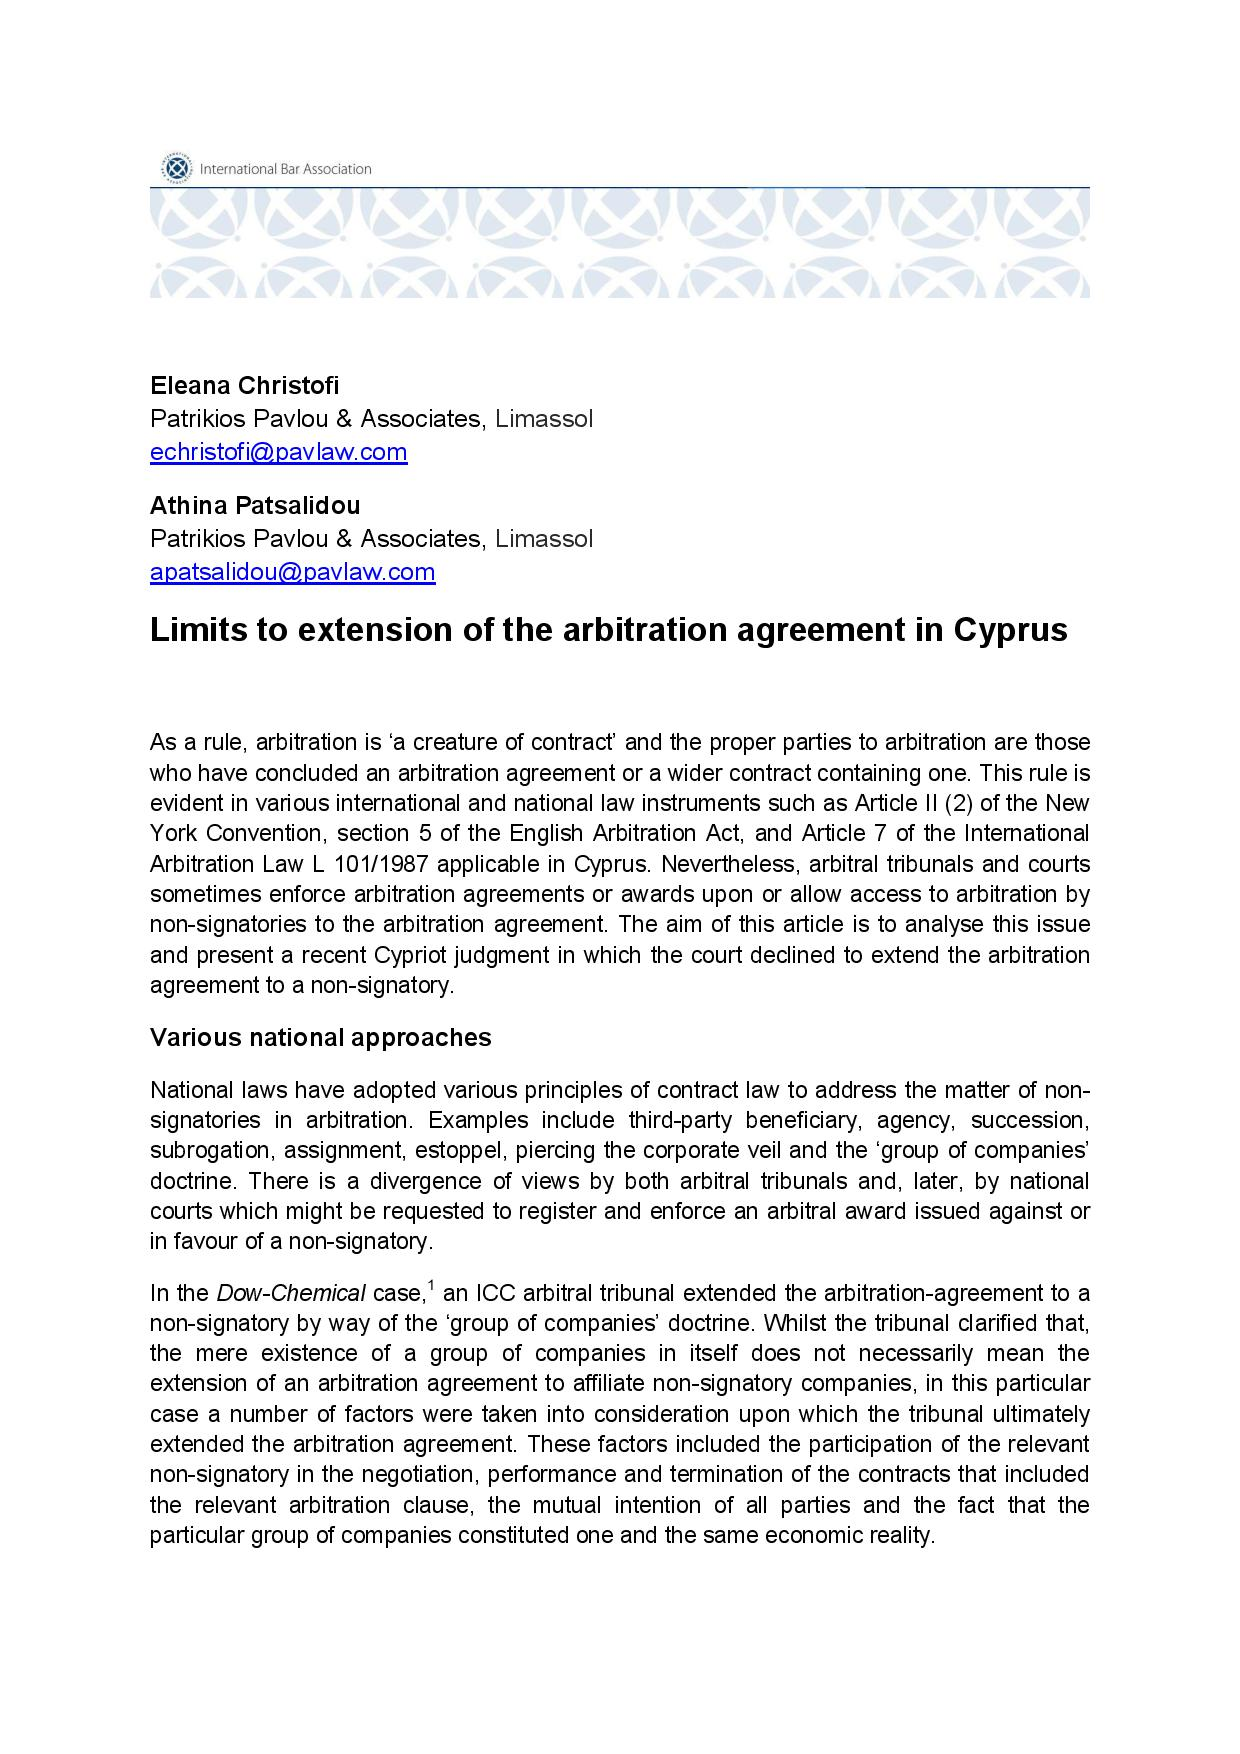 Limits to extension of the arbitration agreement in Cyprus